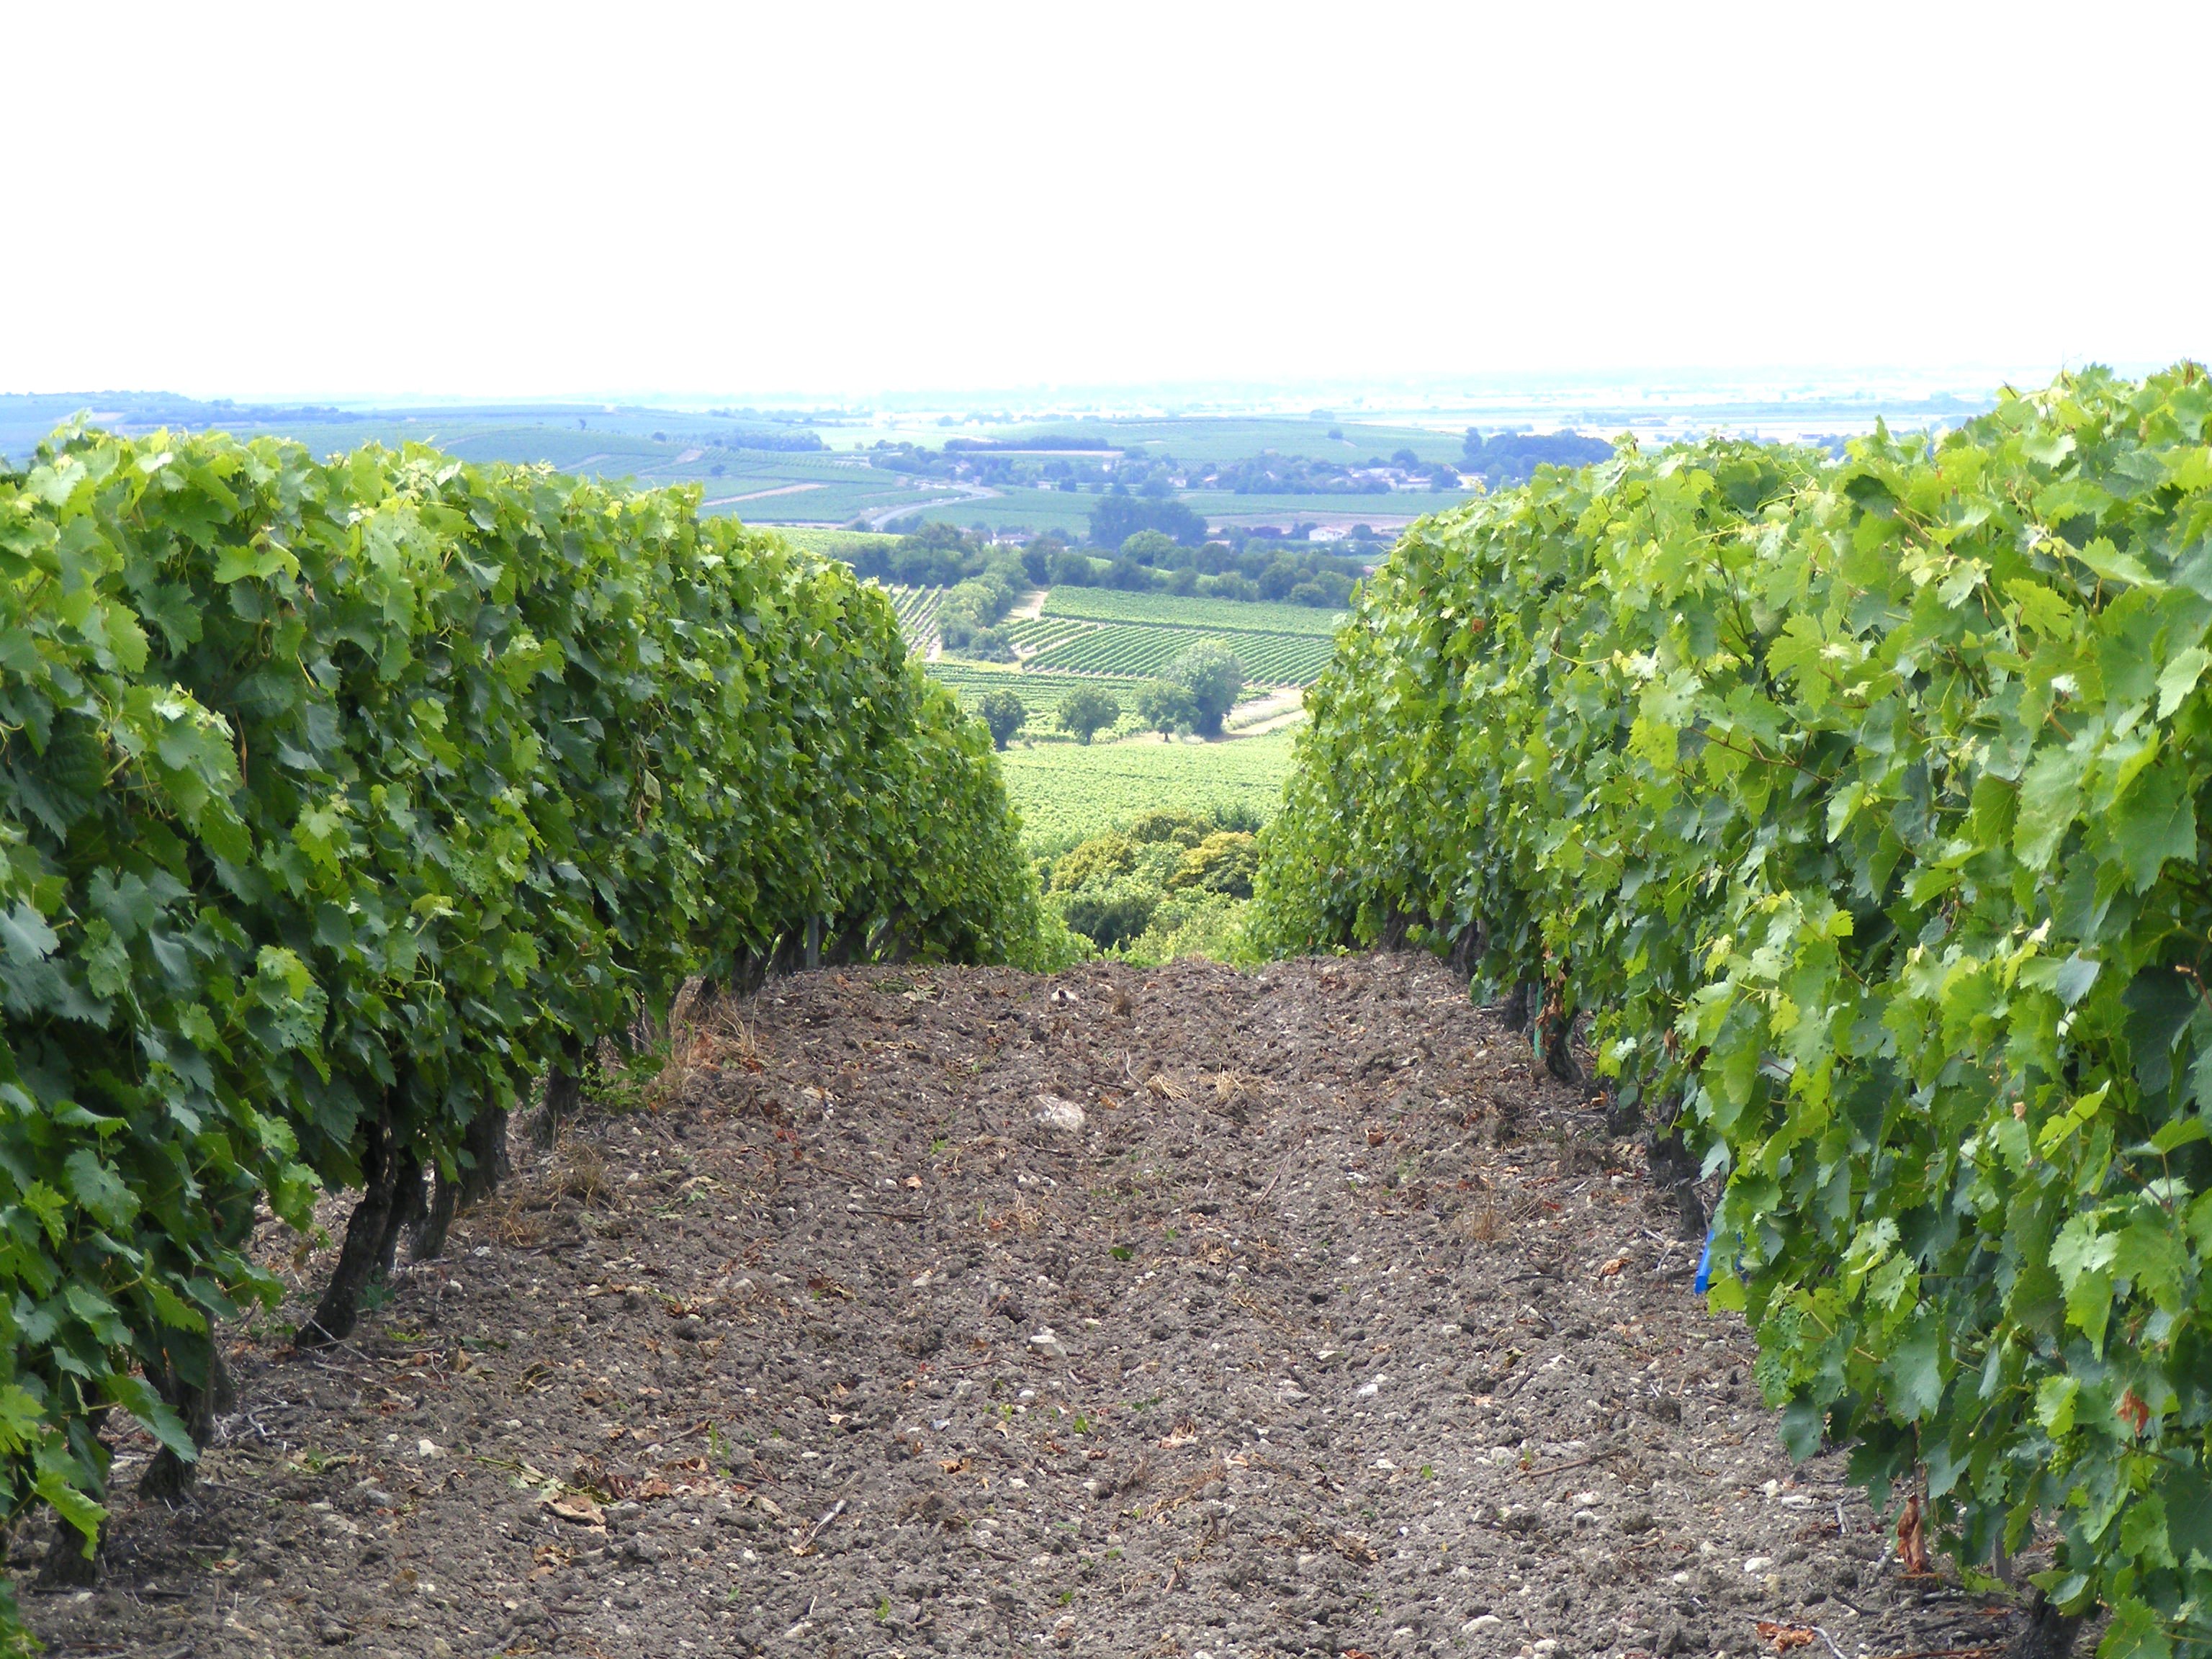 Cognac vineyard in France